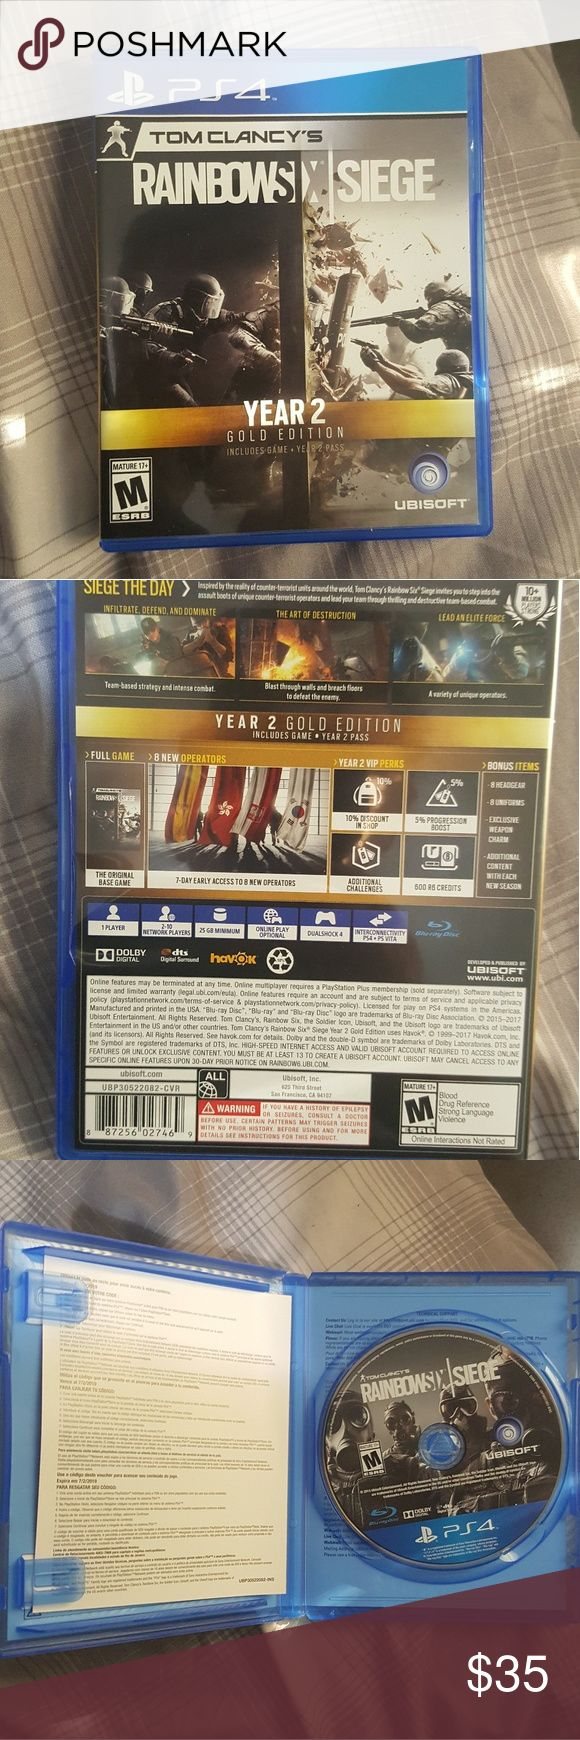 Rainbow Six Seige, Year 2 Gold Edition Almost new, played it once or twice only. I dont like FPS, so selling it. Other